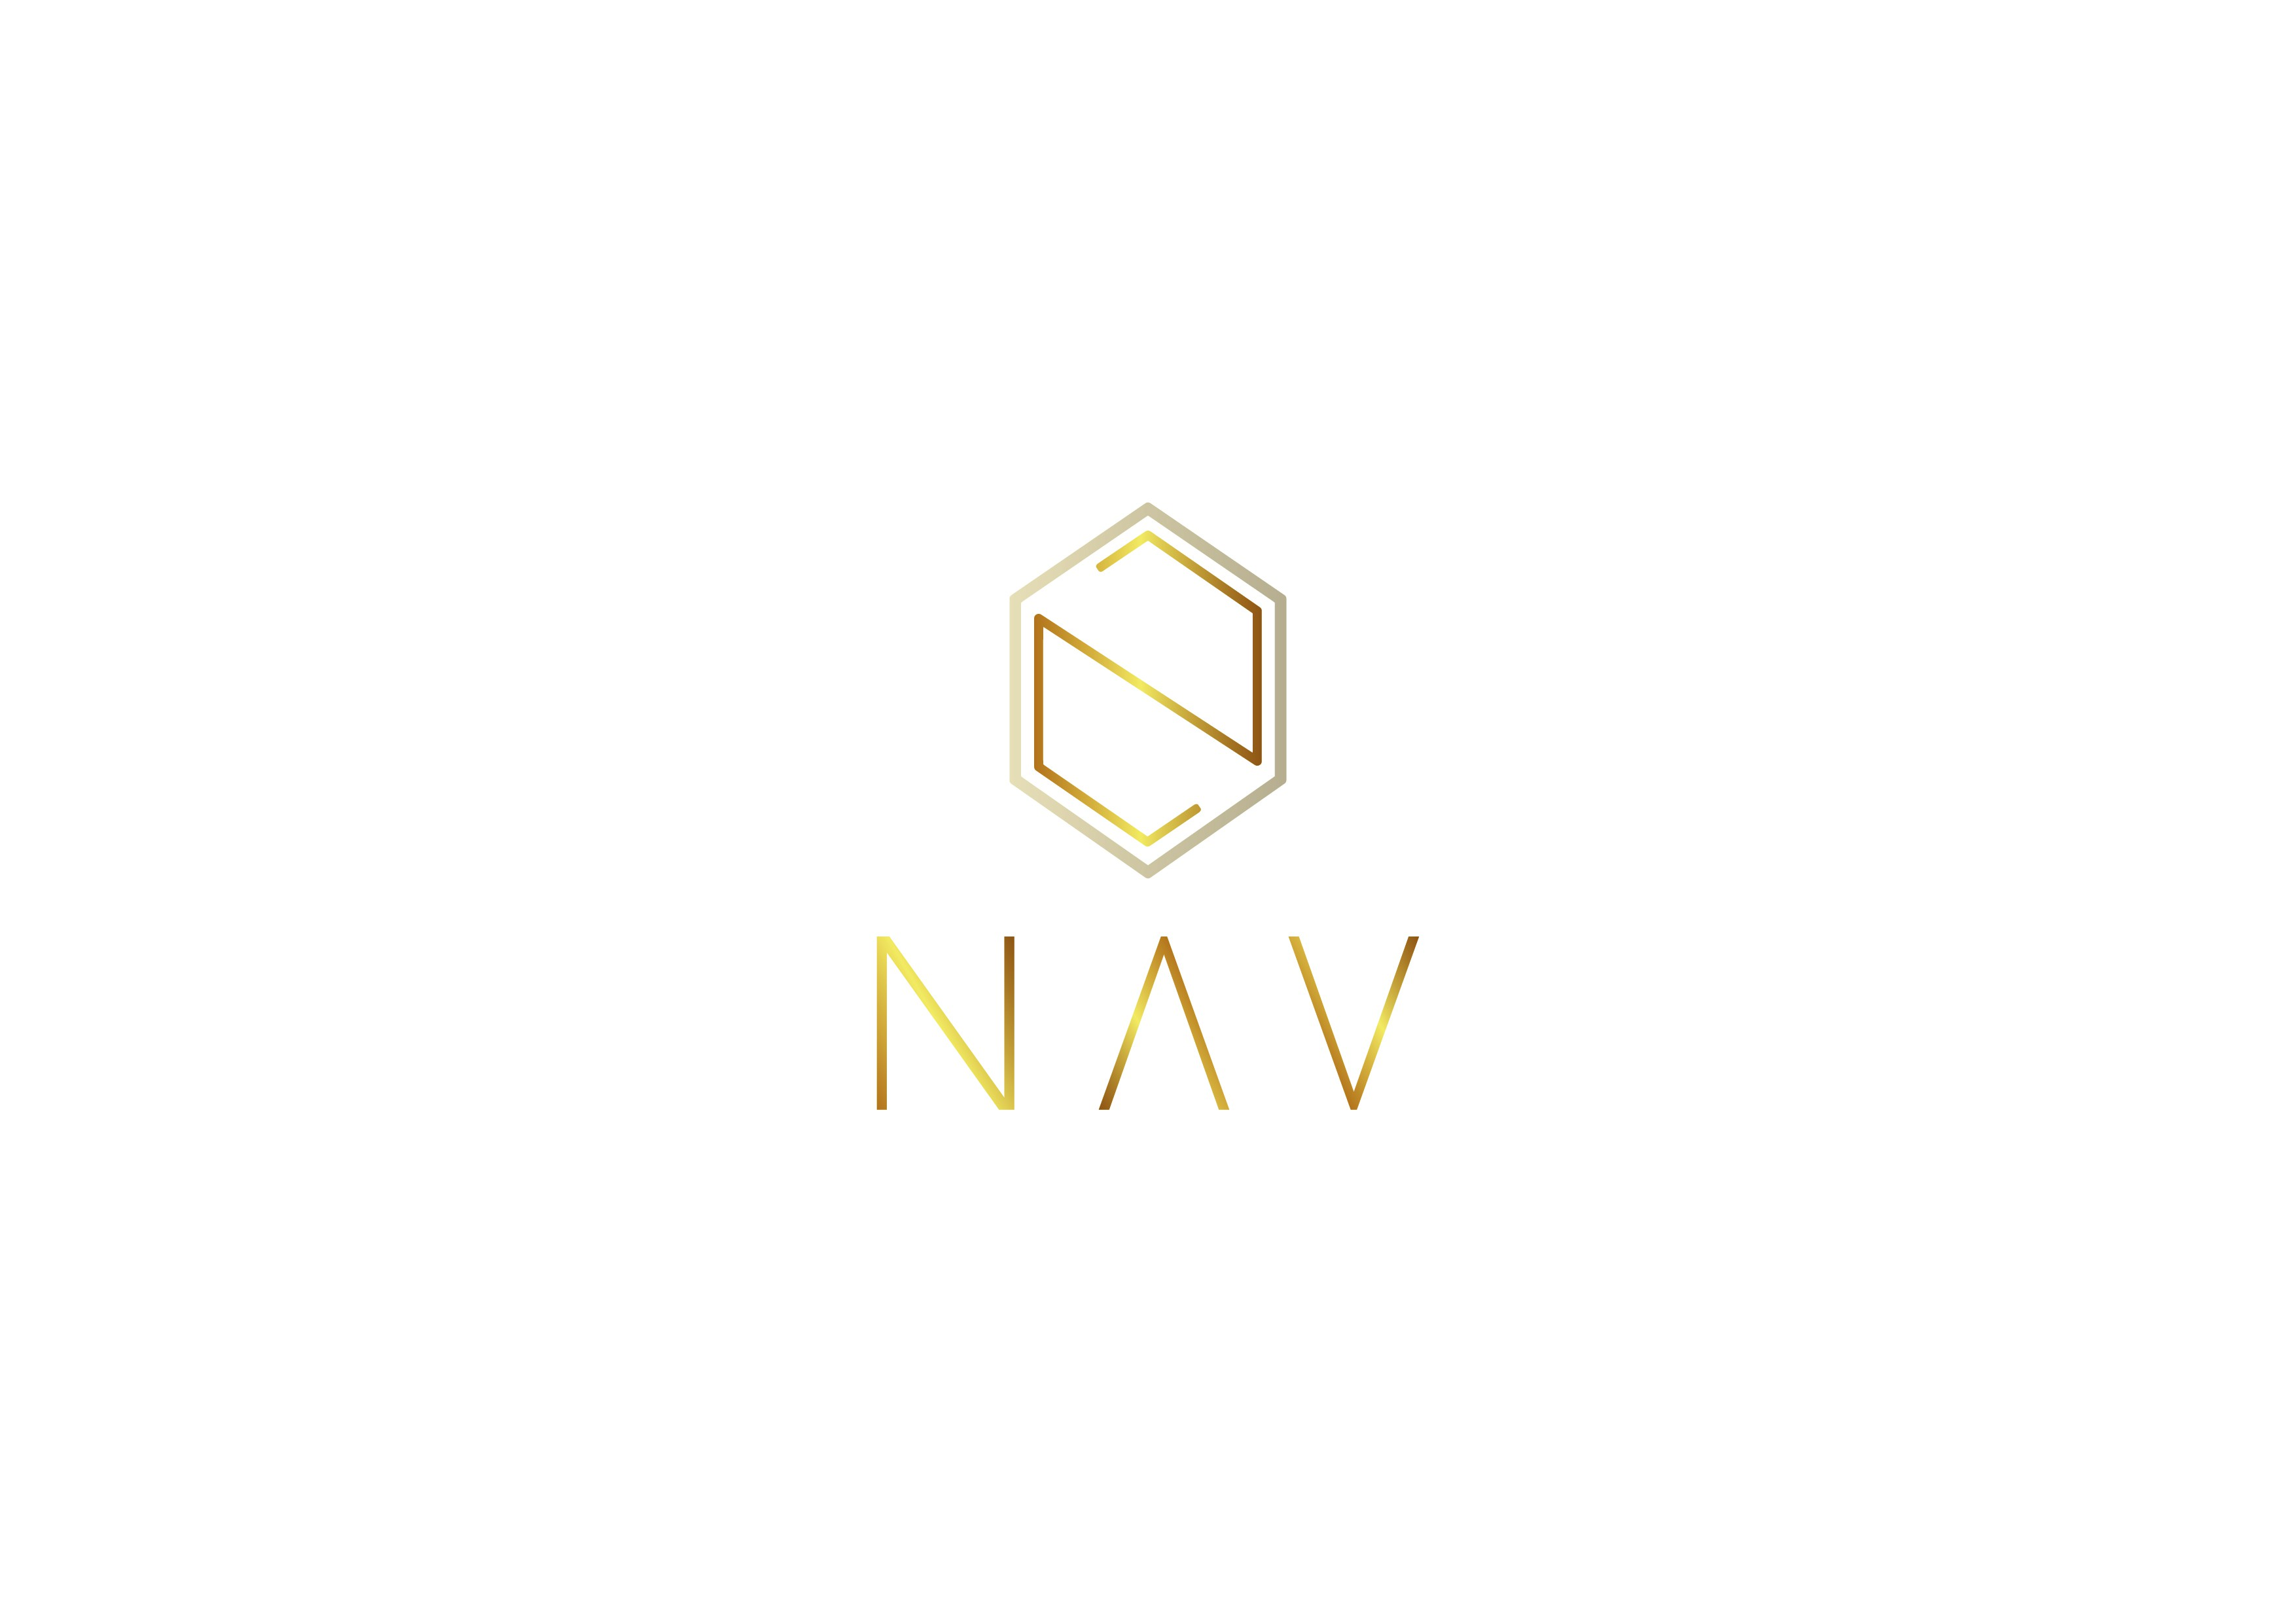 edgy but polished, rough but refined, identity for The Nav Fine Jewelry Works